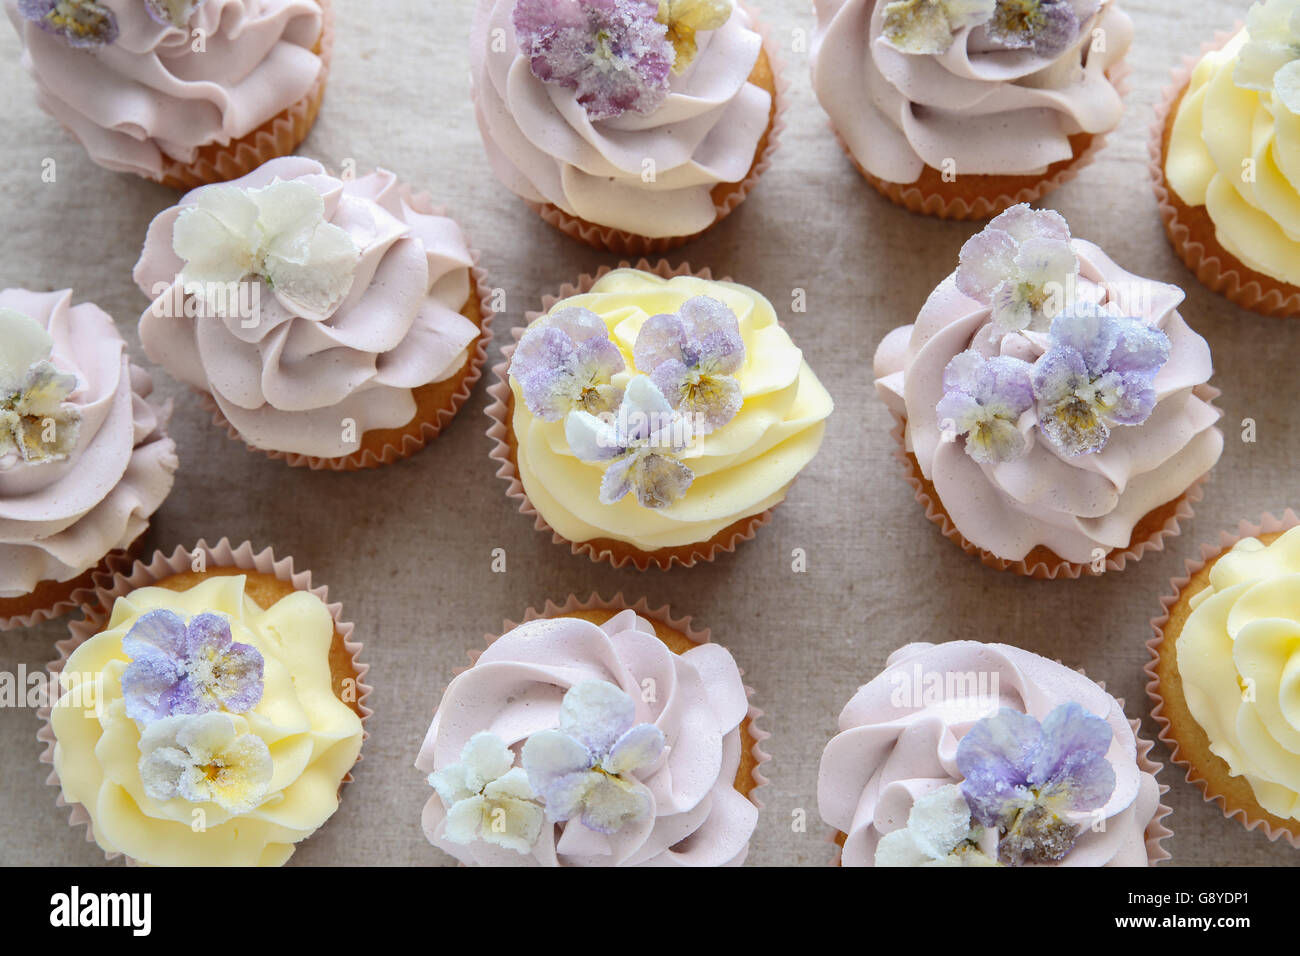 Purple and yellow cupcakes with sugared edible flowers - Stock Image